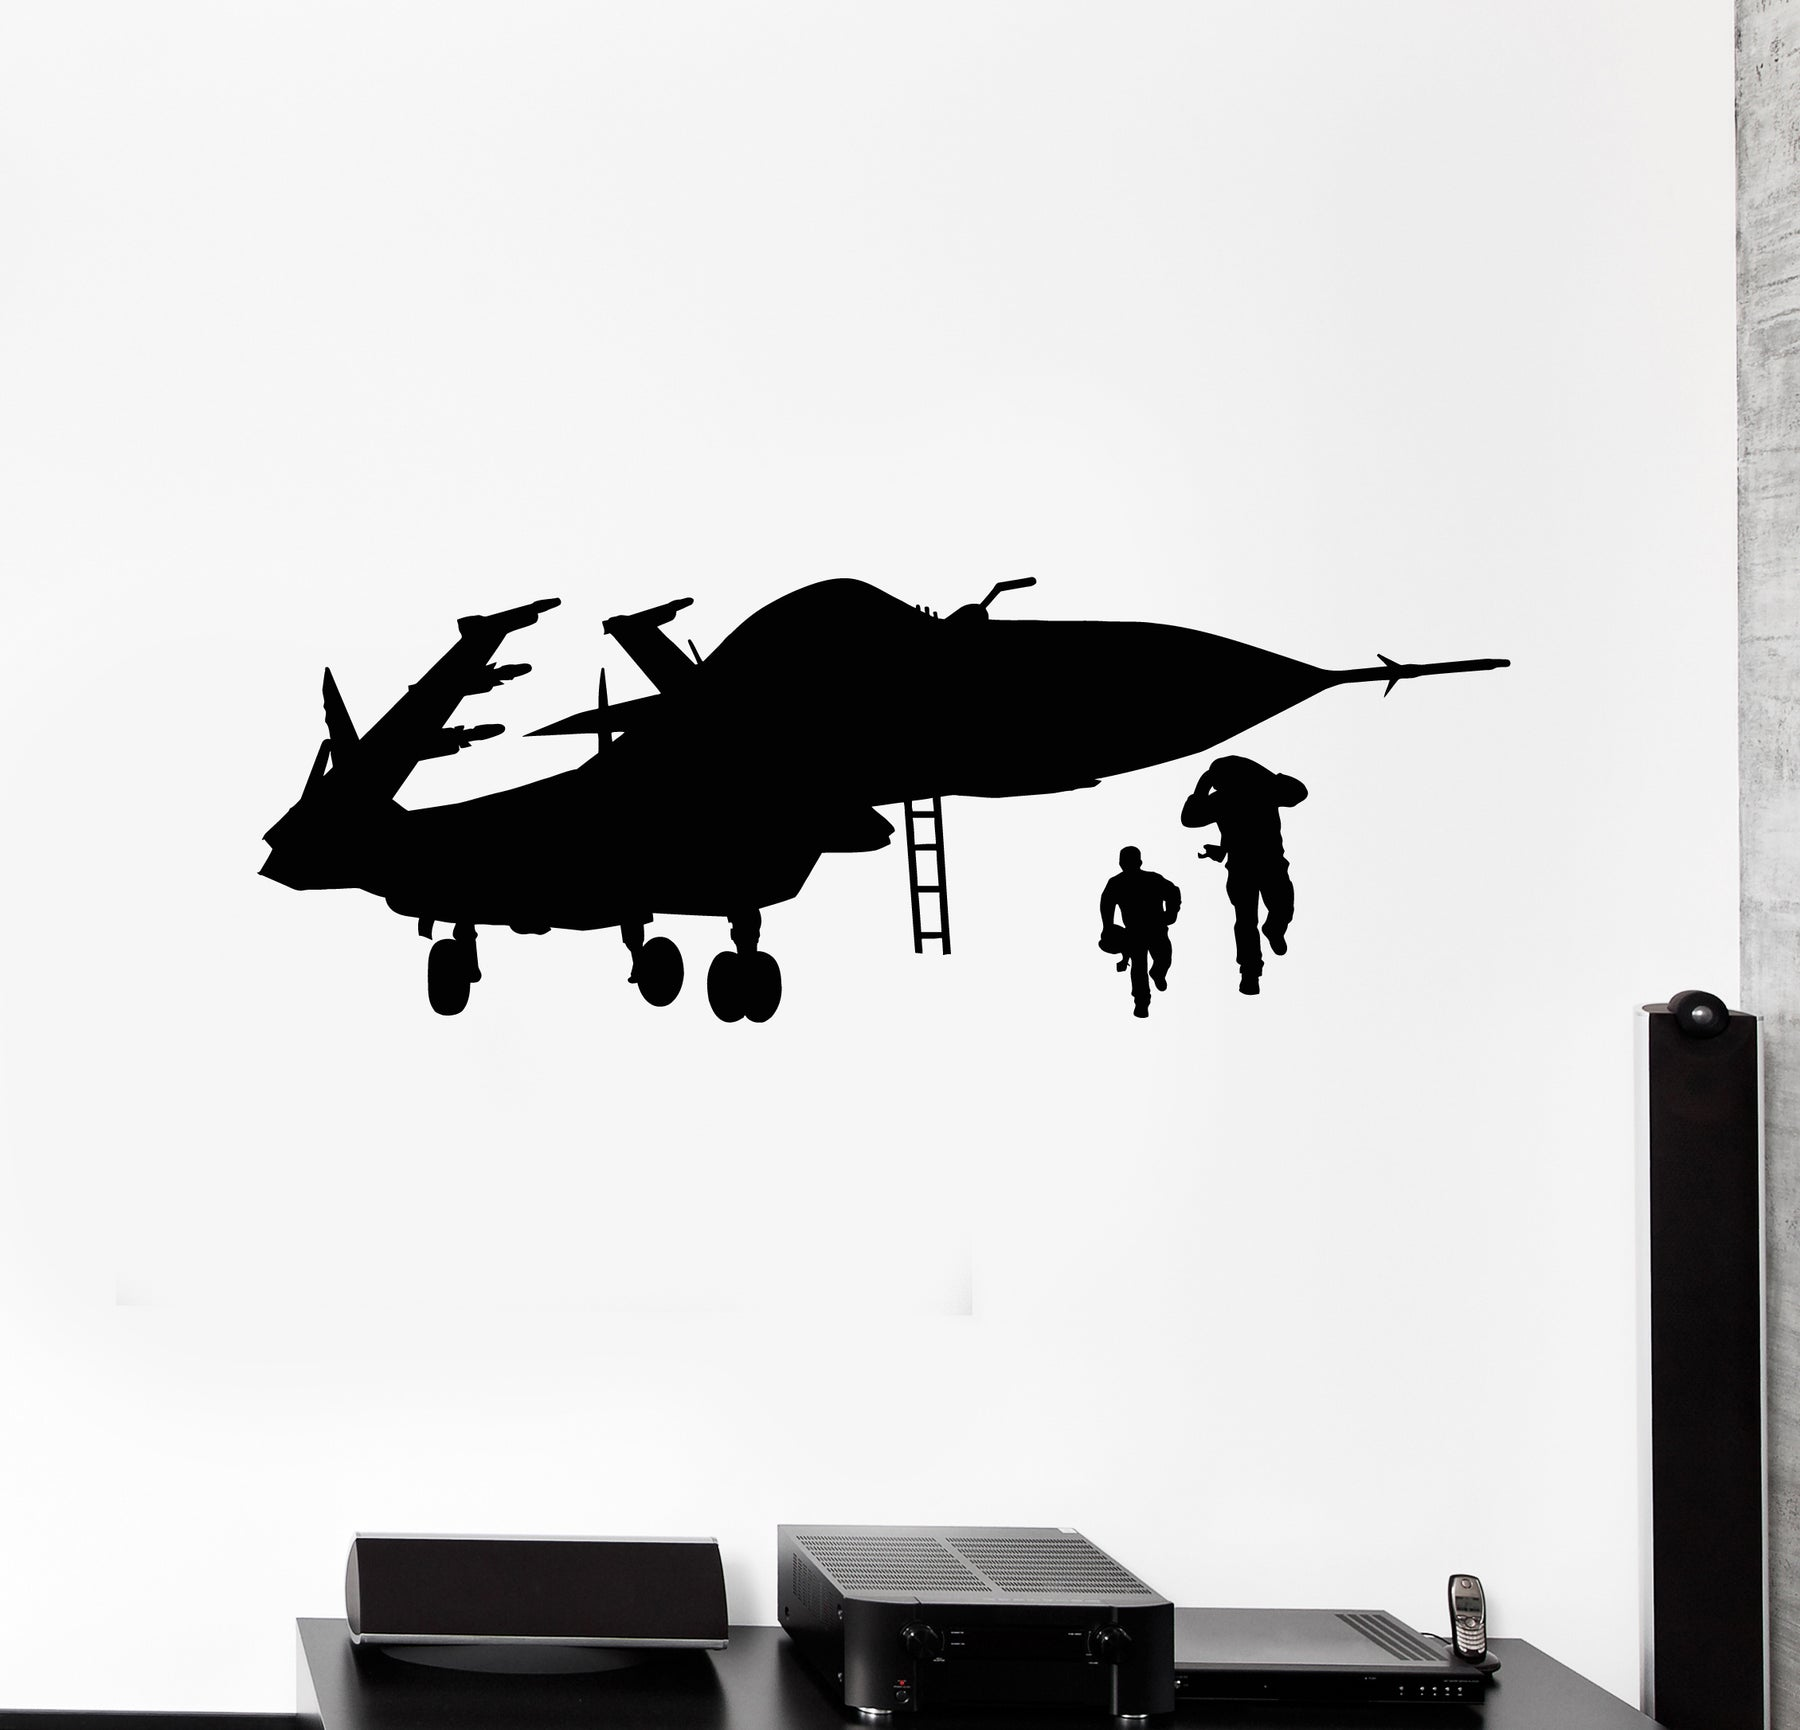 ed2017 Wall Decal Airplane Fighter Military Equipment Vinyl Sticker